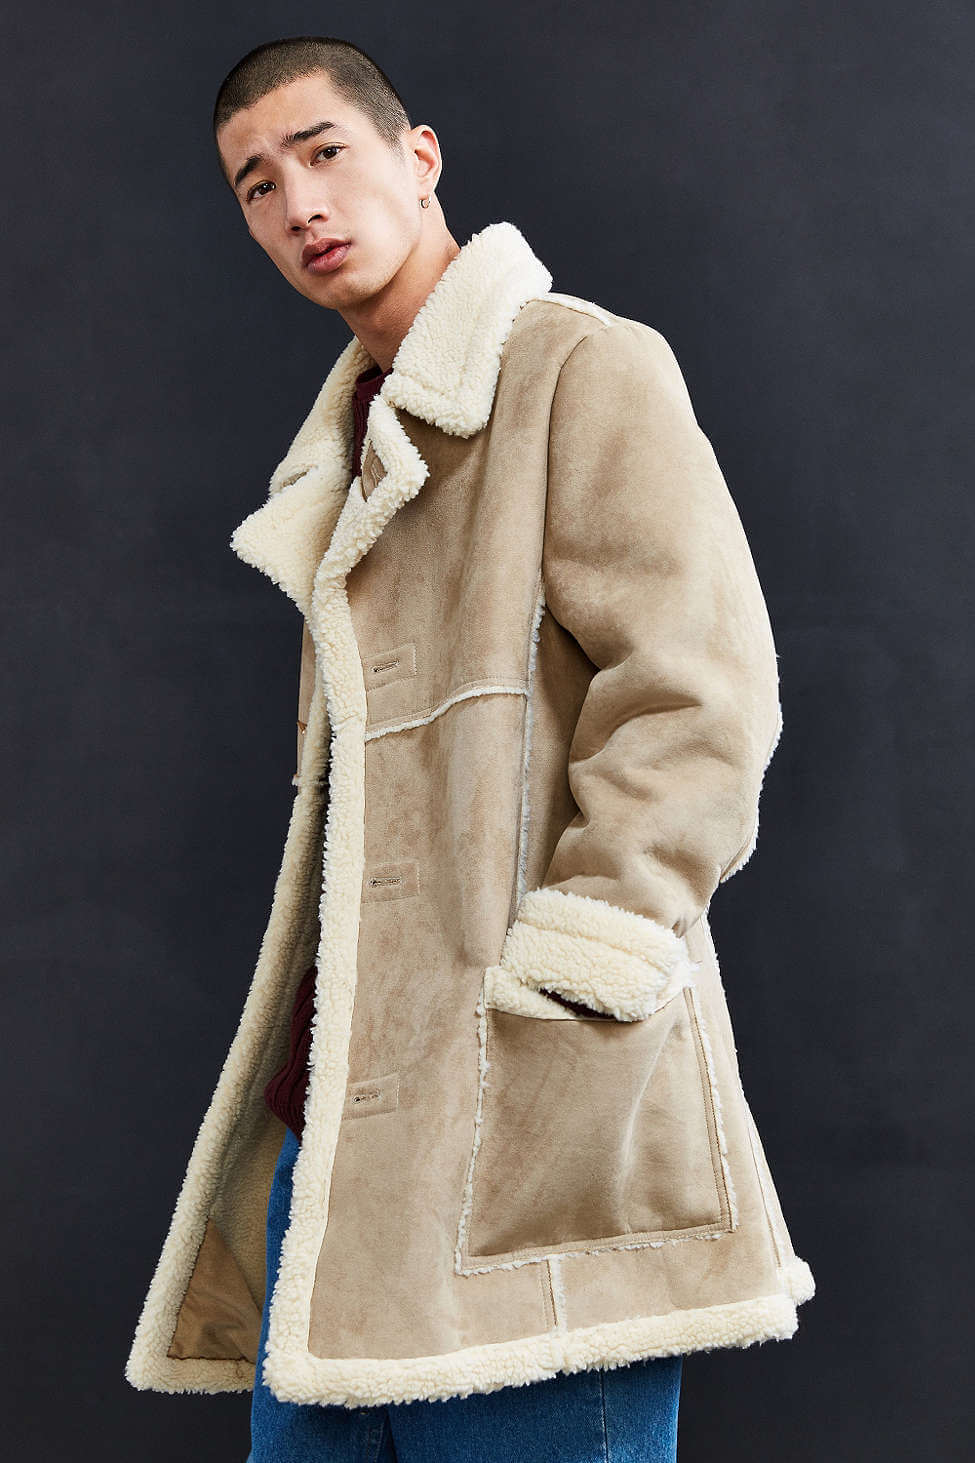 b429996d5 Check Out These 11 Stylish Ways To Wear Faux Shearling